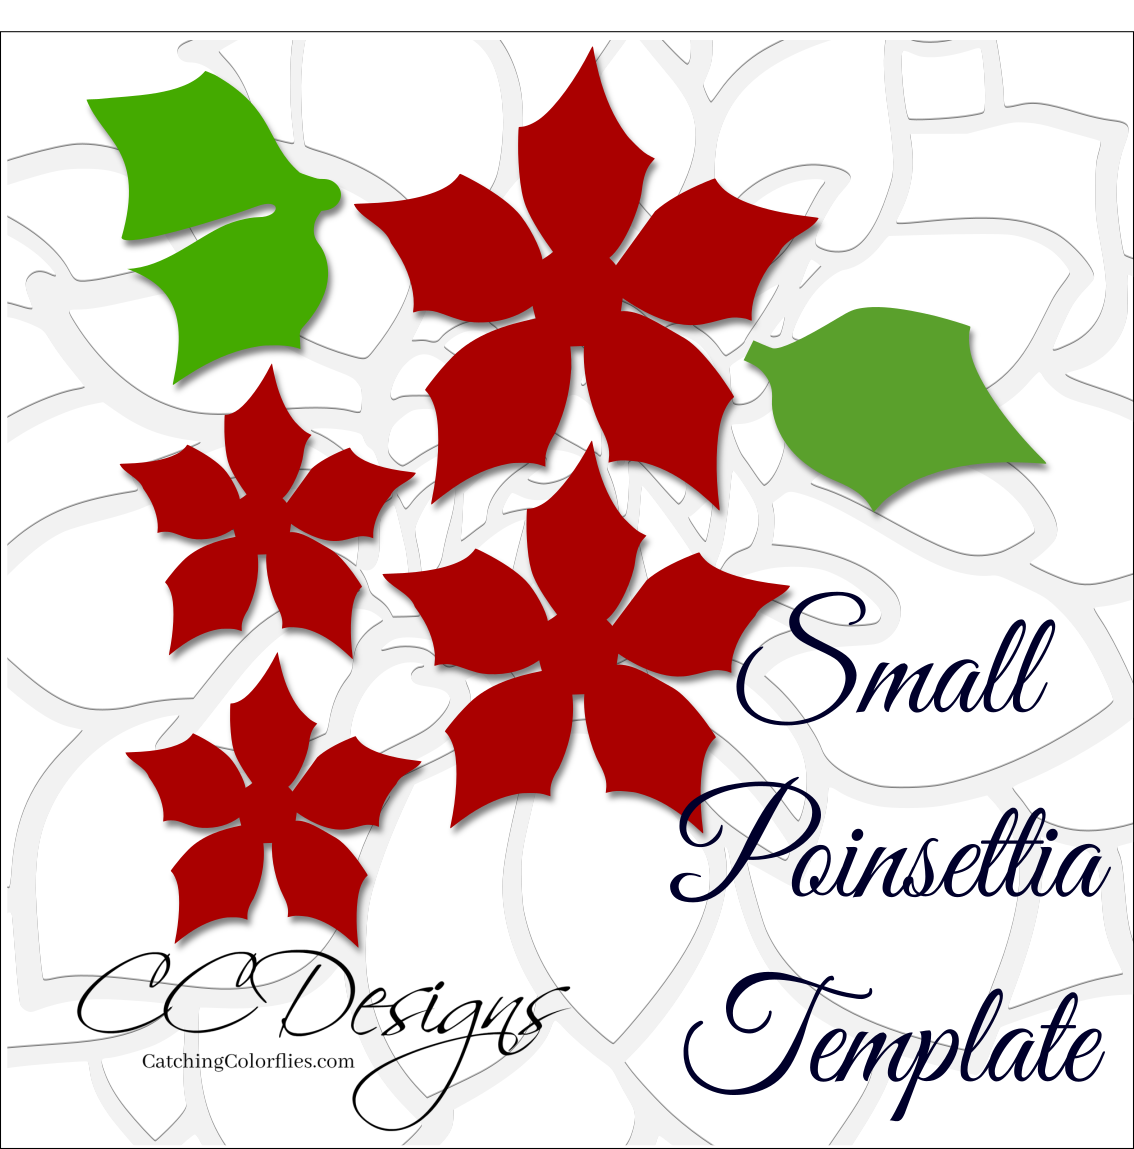 Small Poinsettia Paper Flower Diy Template Paper Flower Template Paper Flowers Paper Flowers Diy